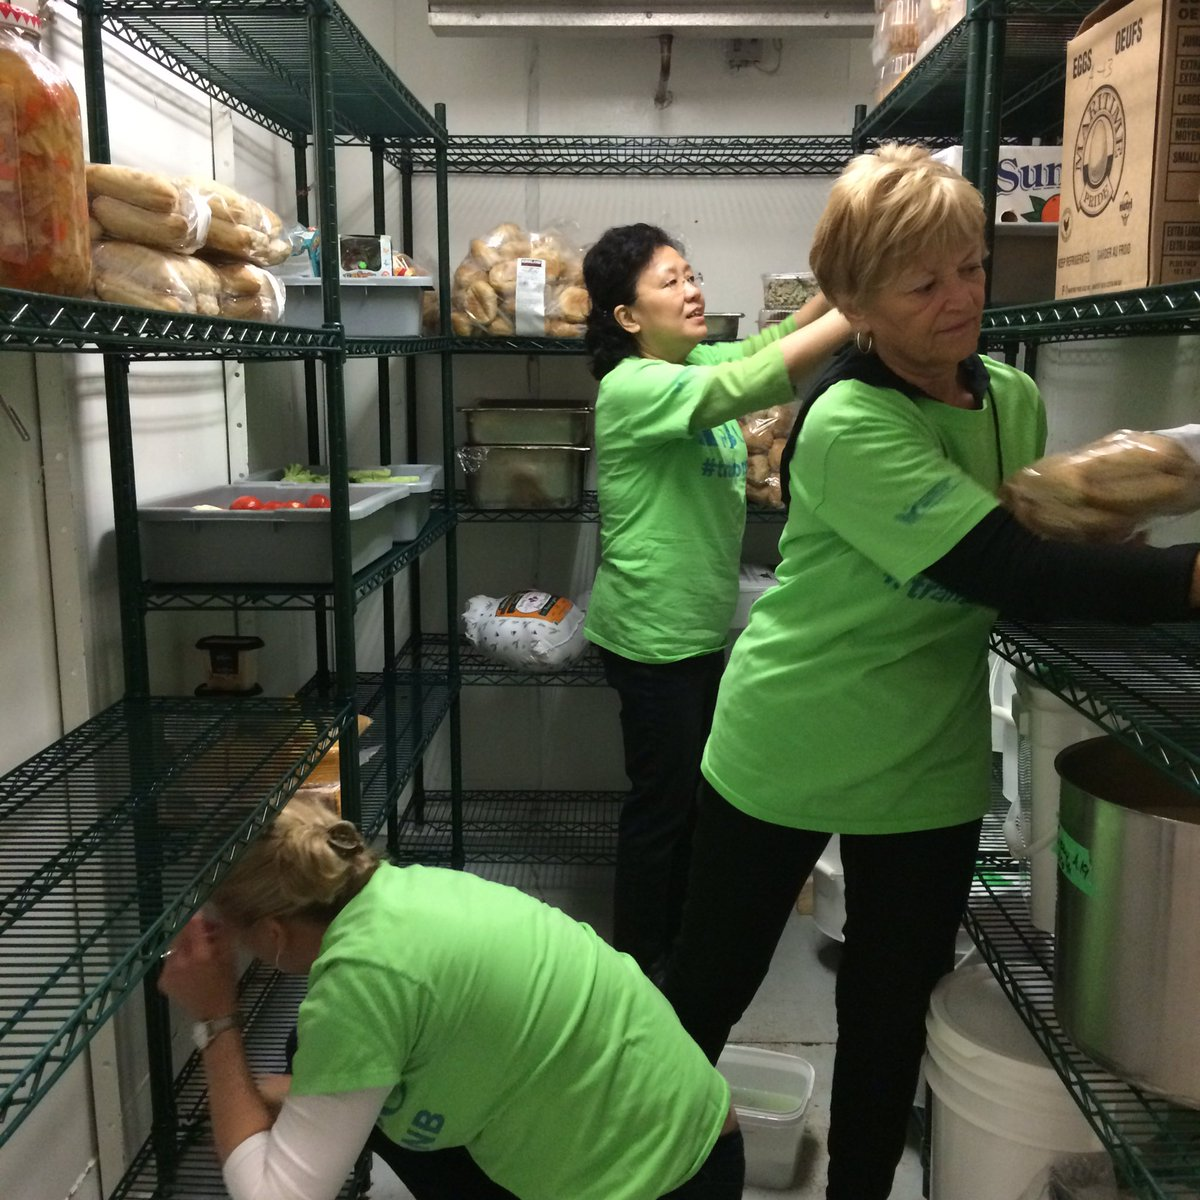 NBCC staff helping out at @FtonComKitchen. We spy @nbccpres! #transformNB #fredericton https://t.co/FiUldxJLw4